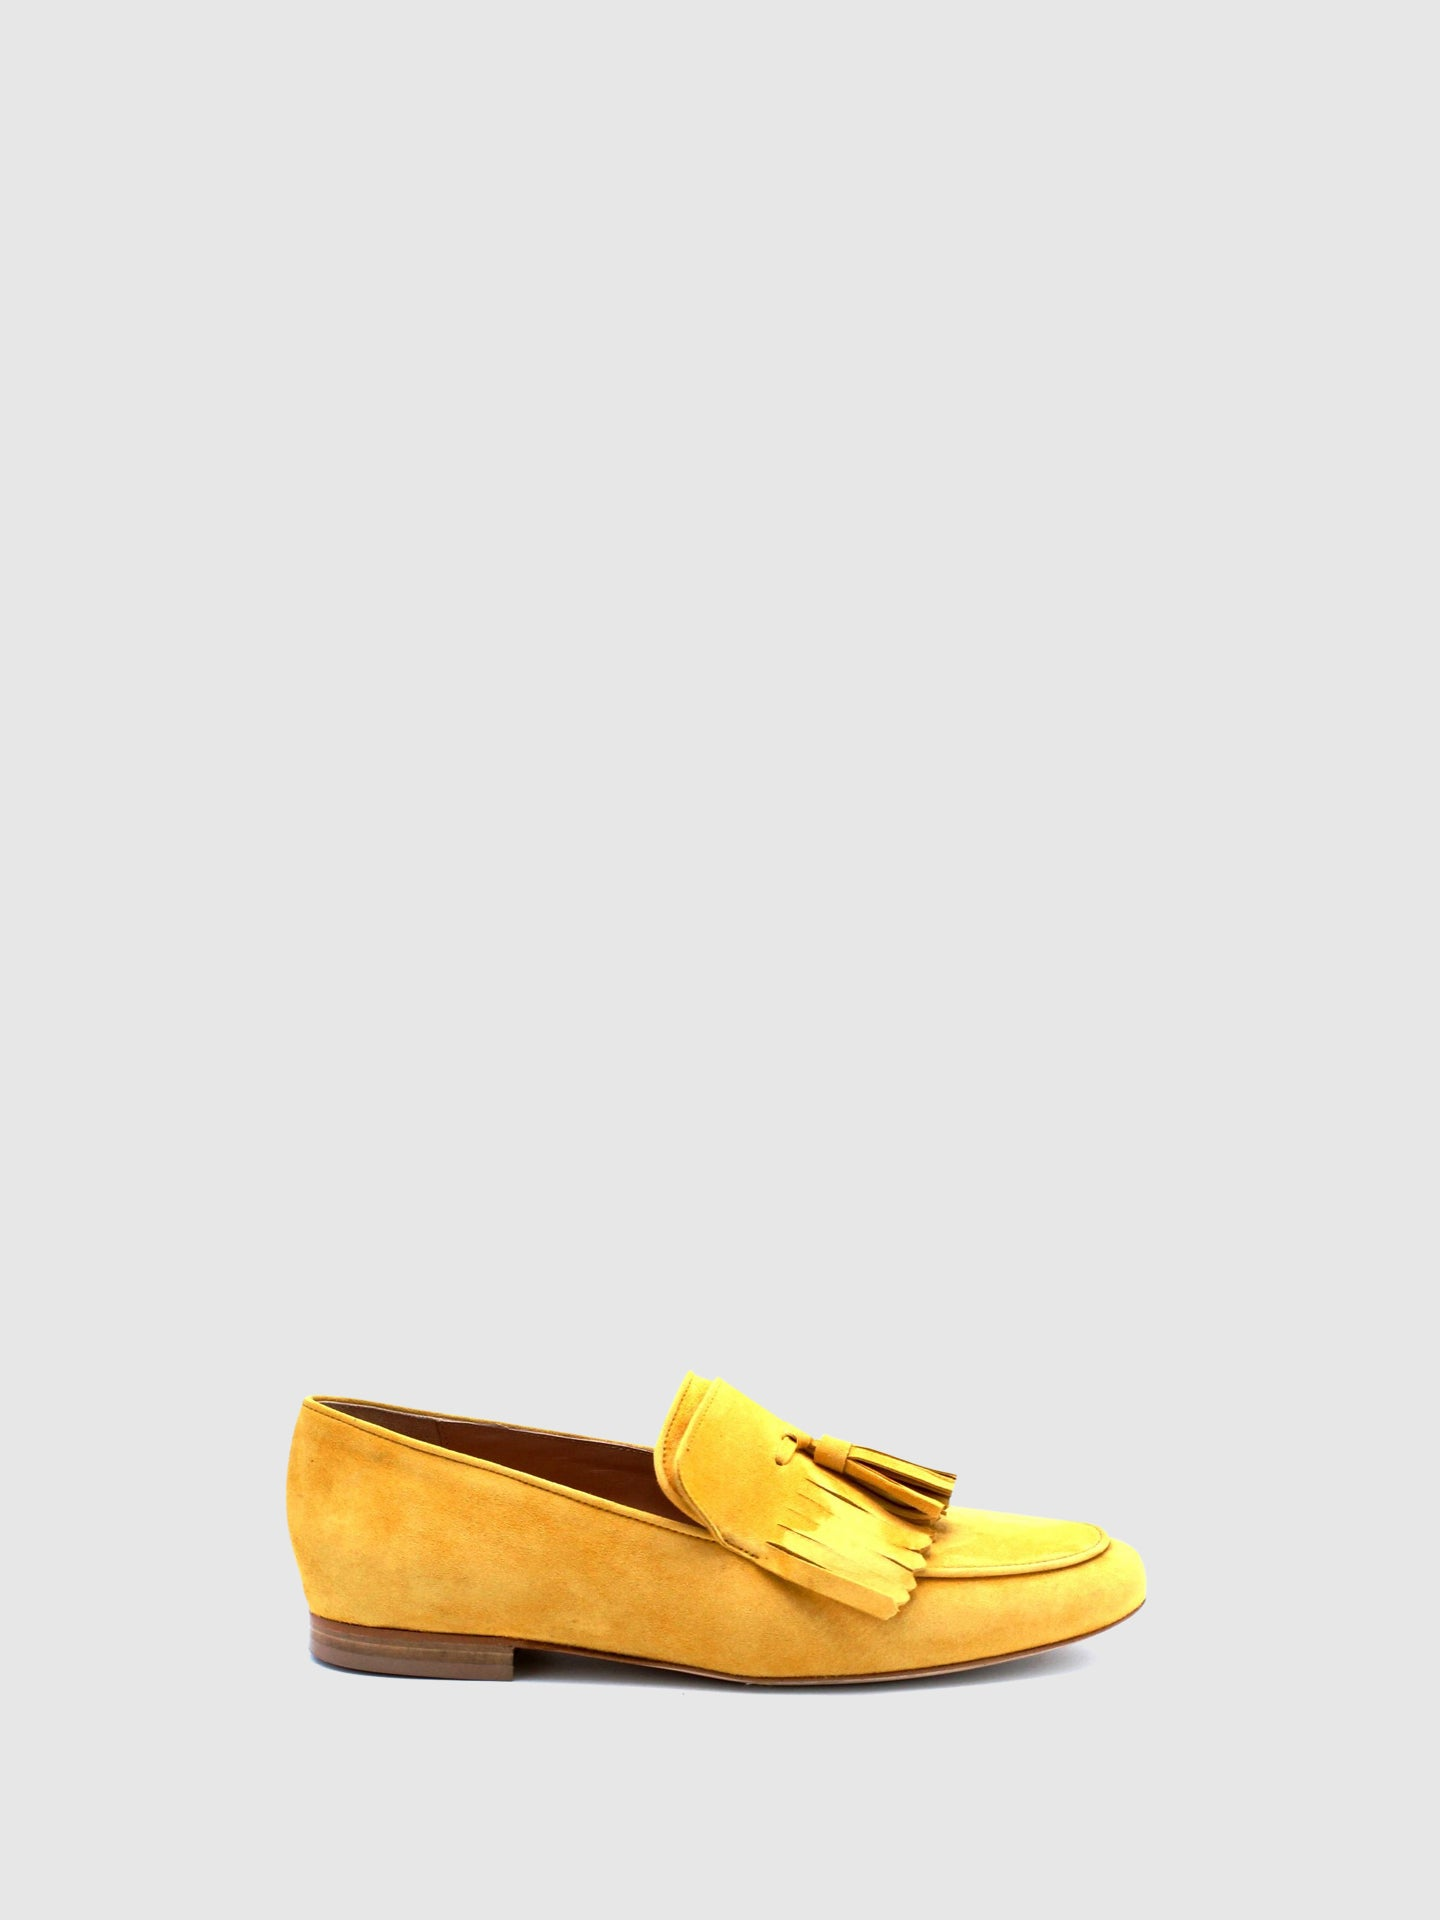 JJ Heitor Yellow Suede Loafers Shoes